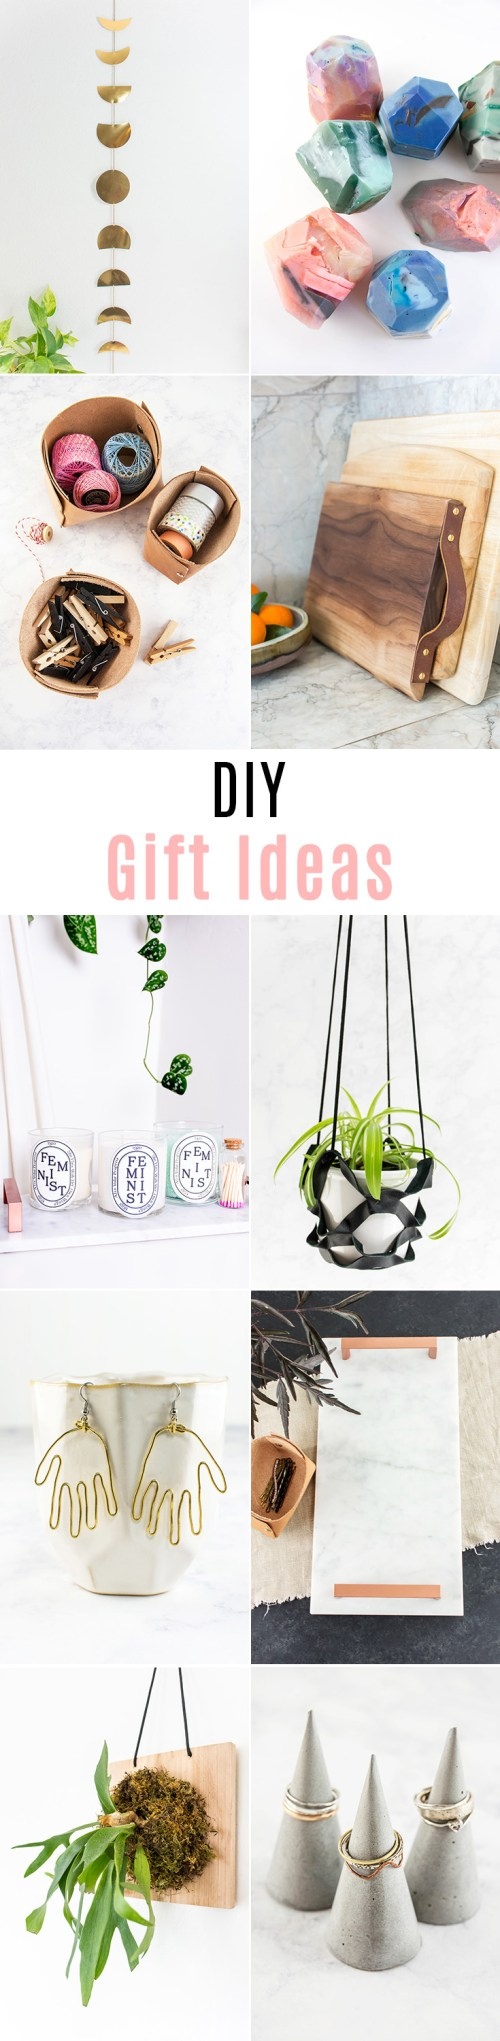 Want to make someone special a DIY gift? Here are 10 gifts you can make yourself.